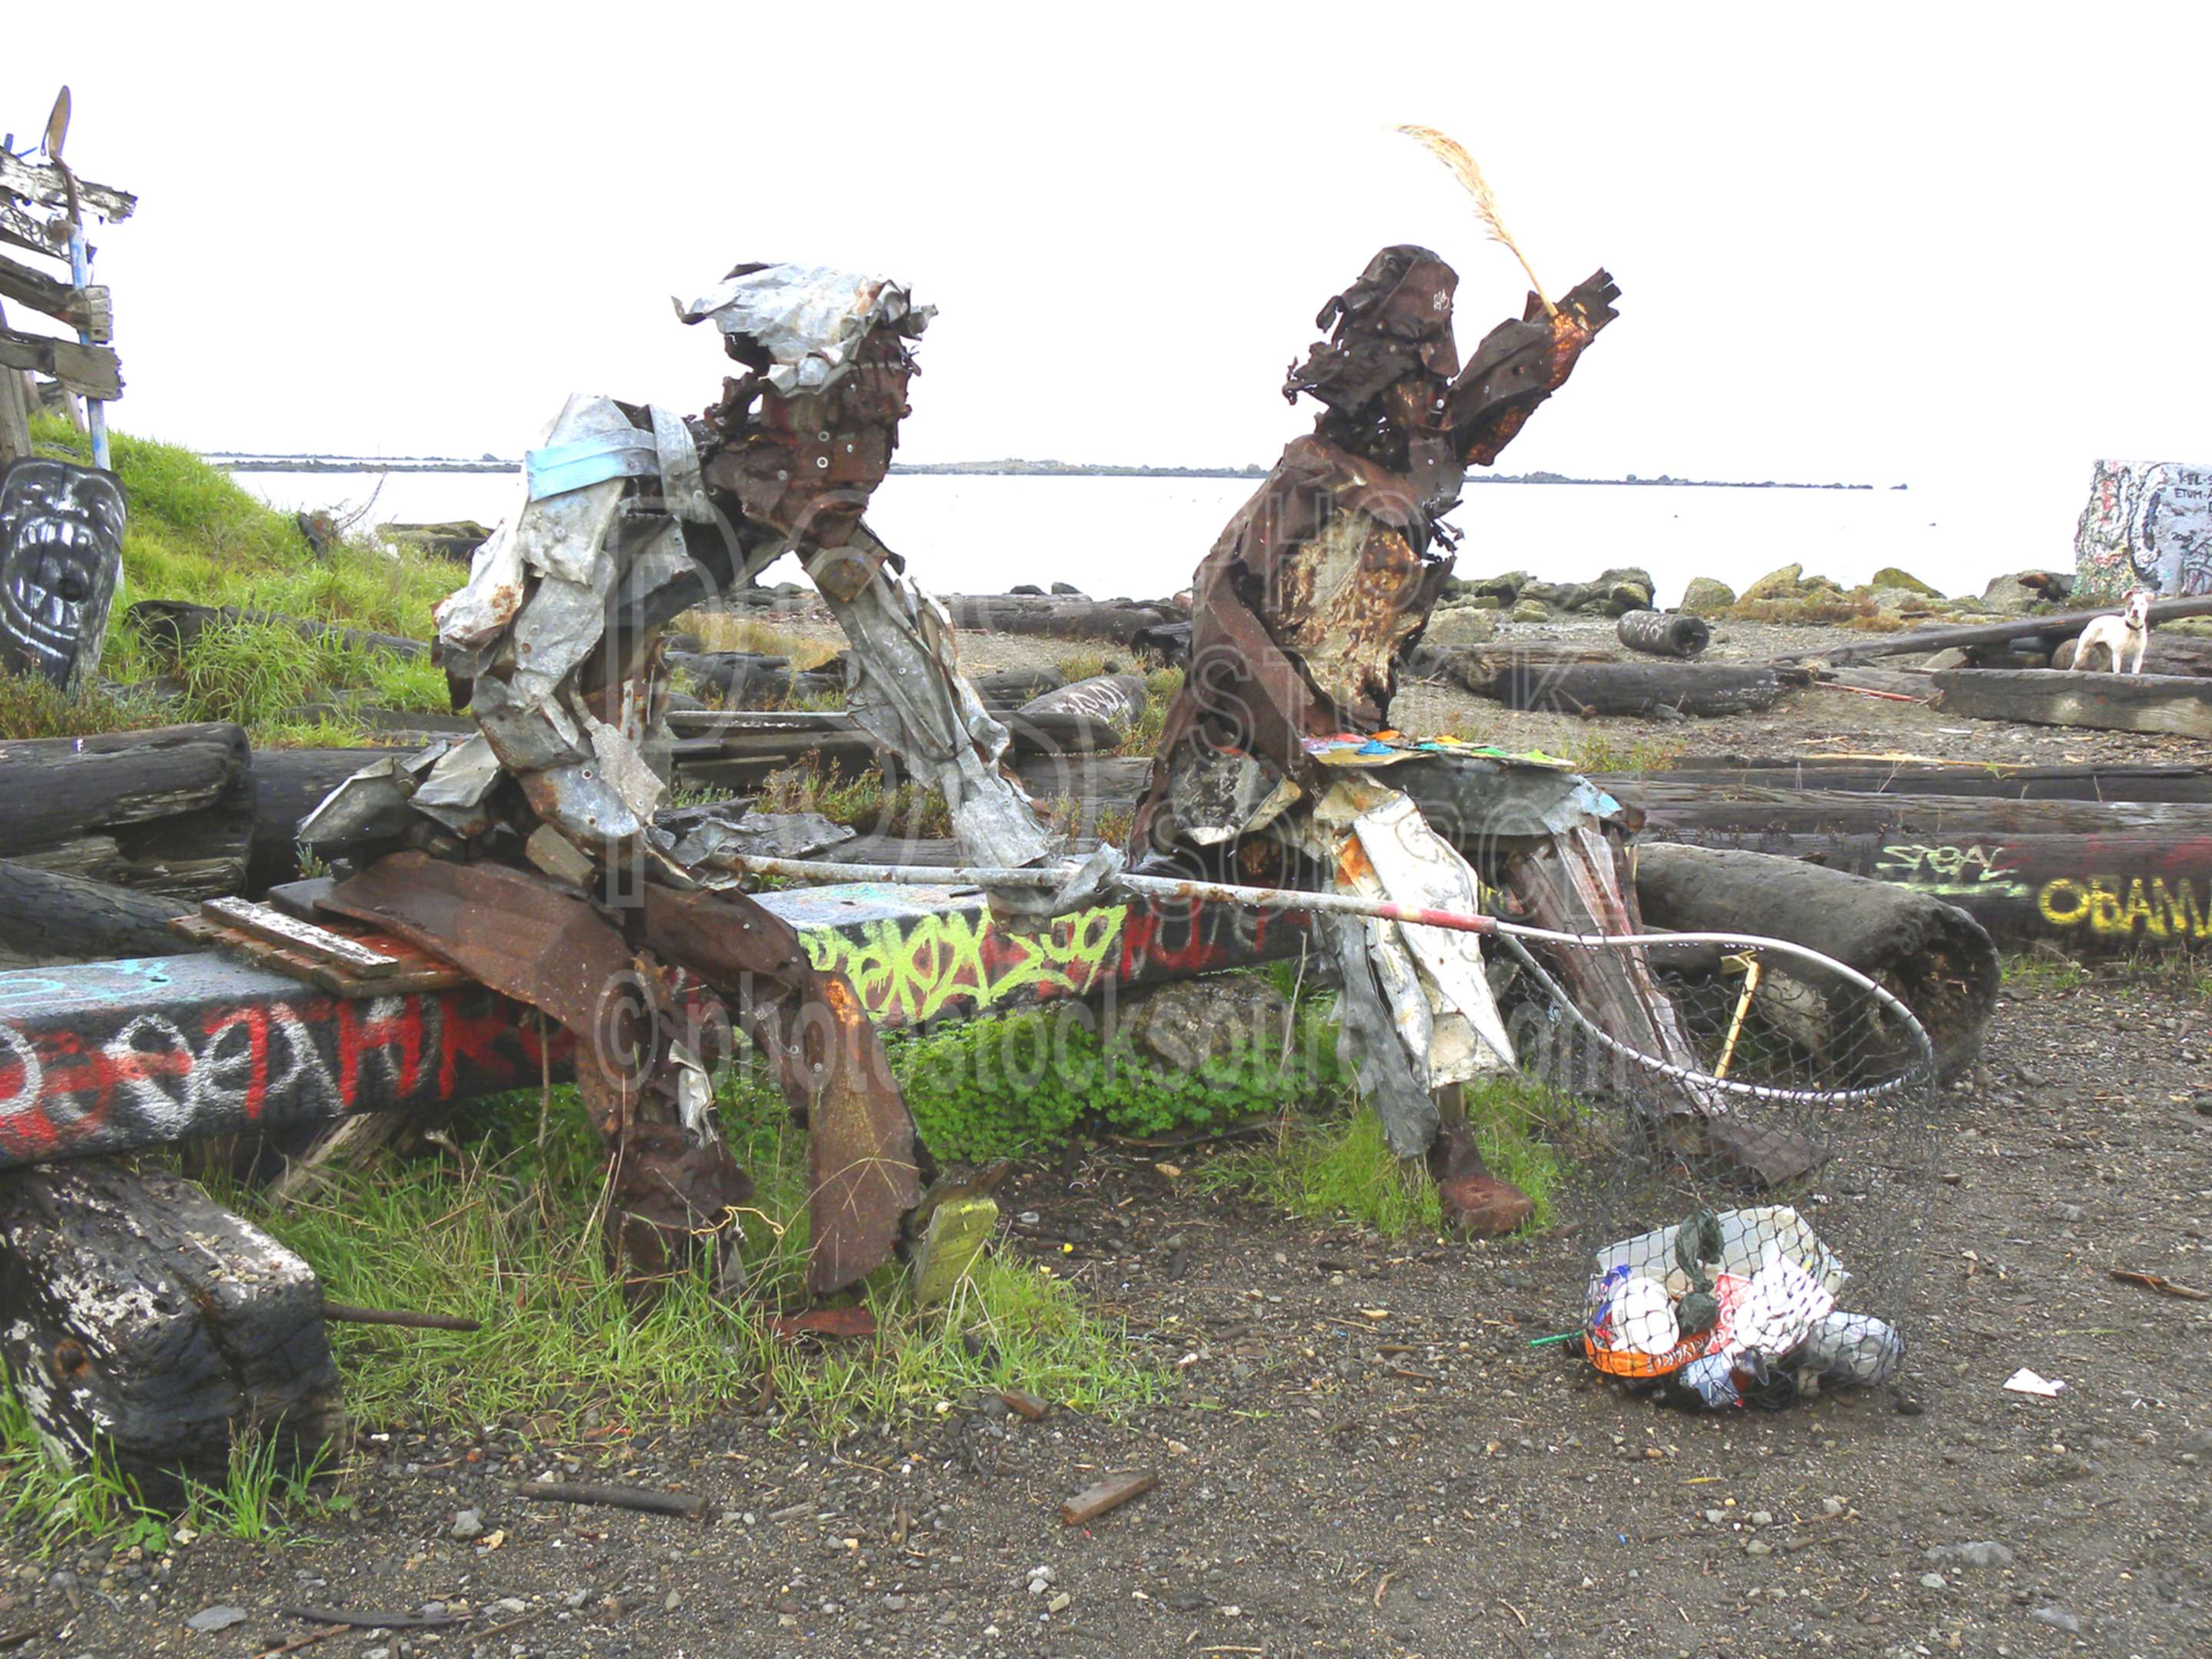 Twin Sculptures,sculpture,junk,dump,abstract,albany bulb,berkeley bulb